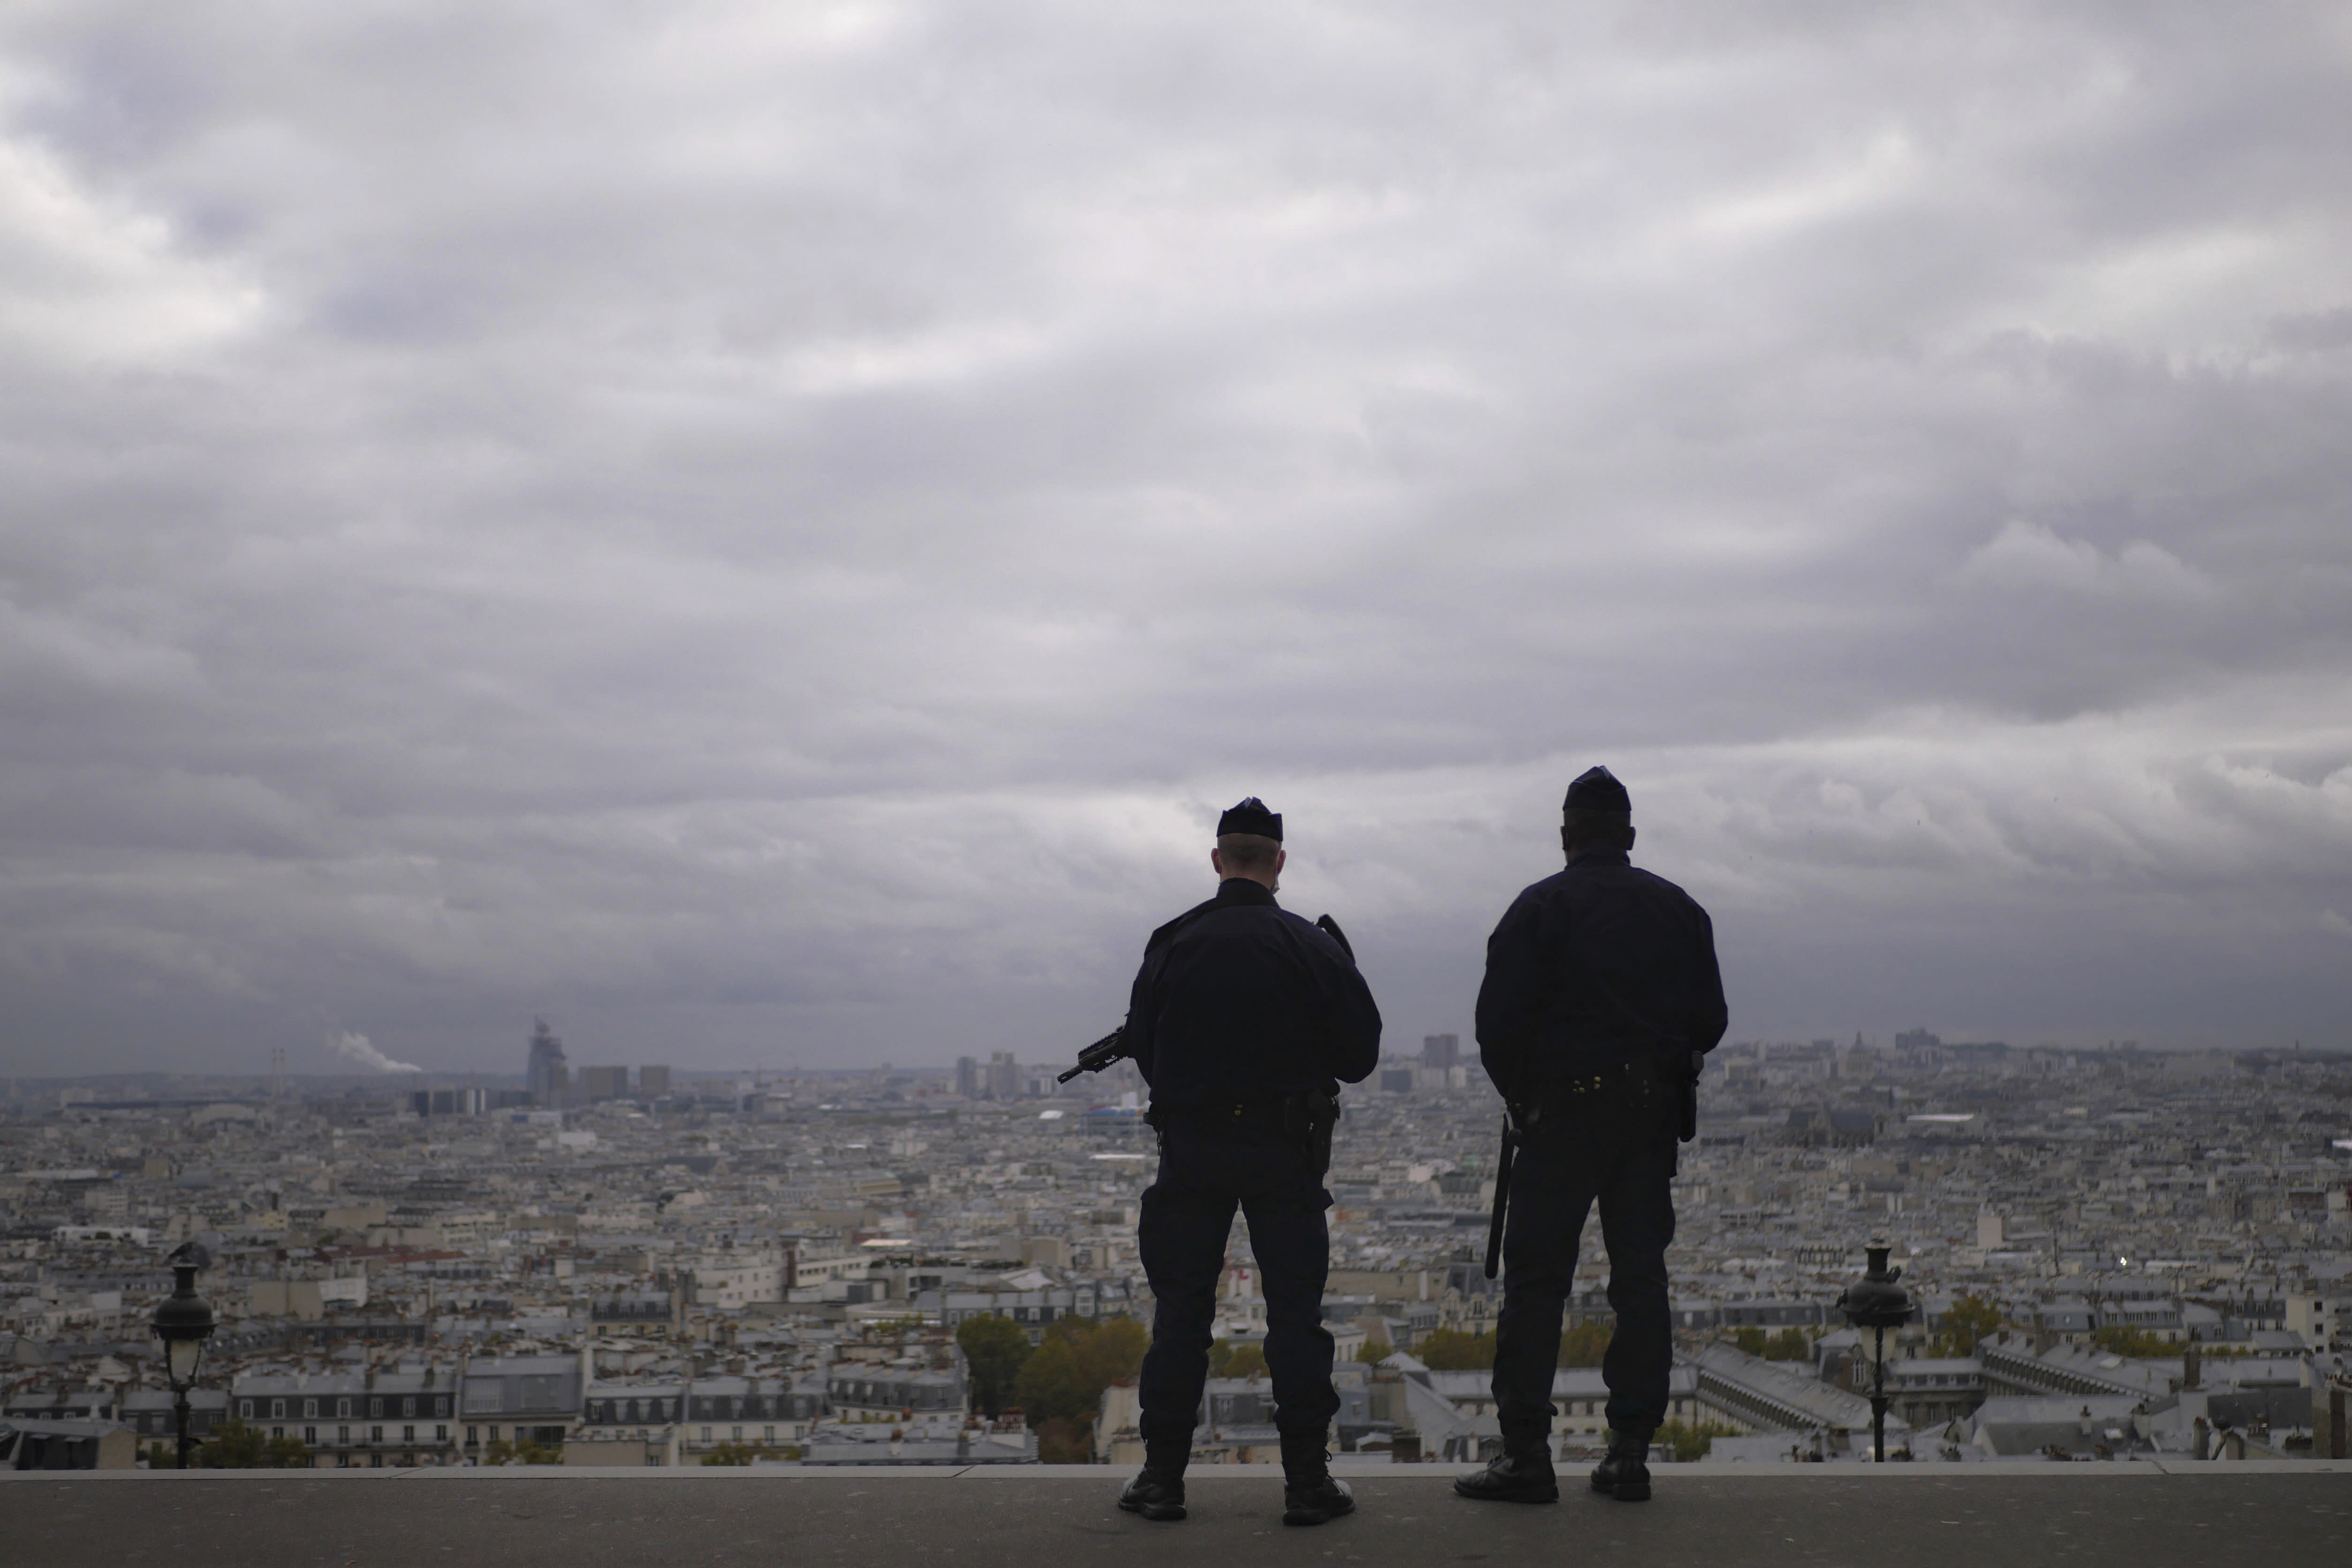 France fights hold of Islamist radicals with dragnets, laws